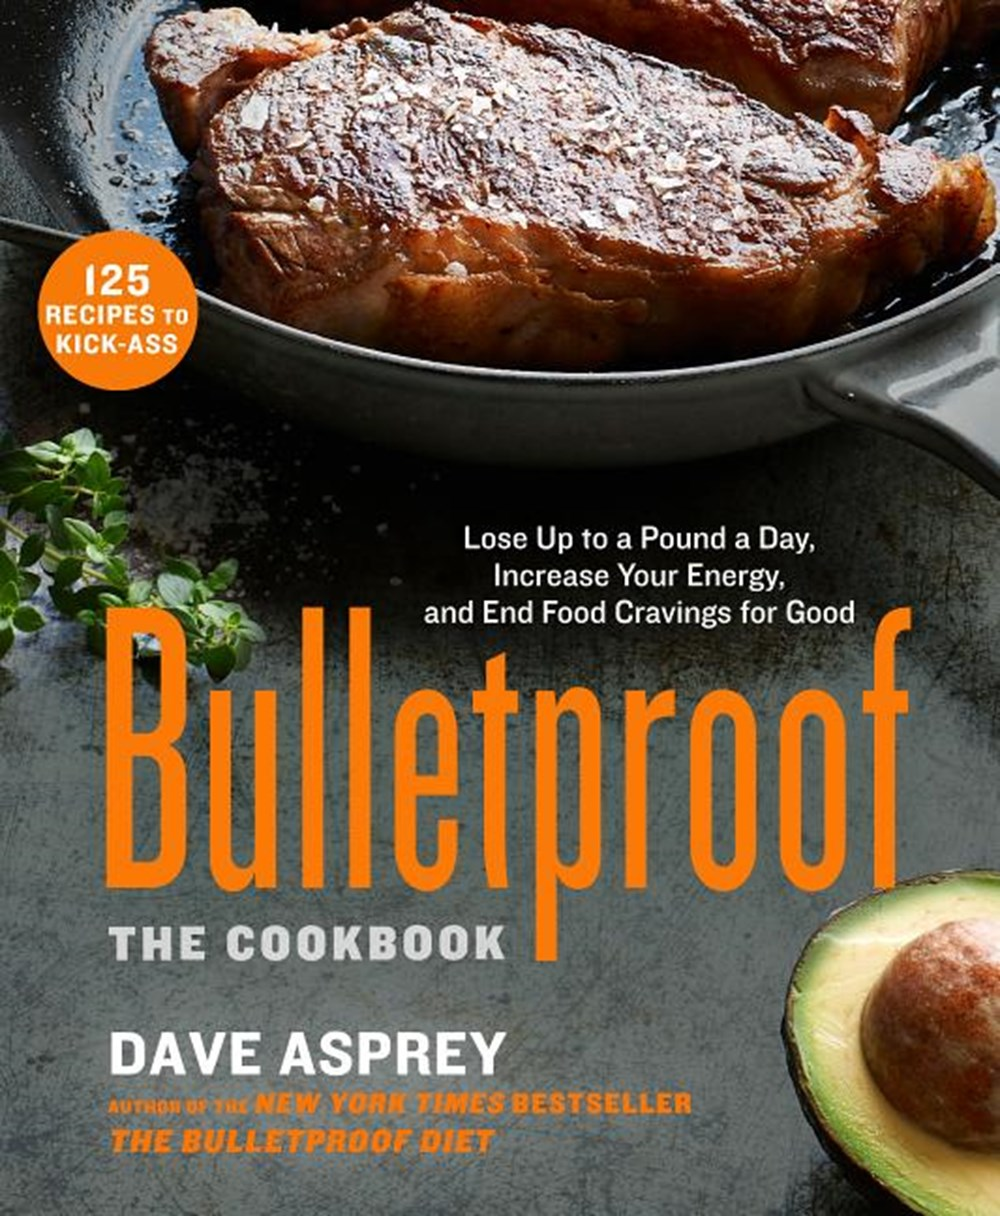 Bulletproof The Cookbook: Lose Up to a Pound a Day, Increase Your Energy, and End Food Cravings for